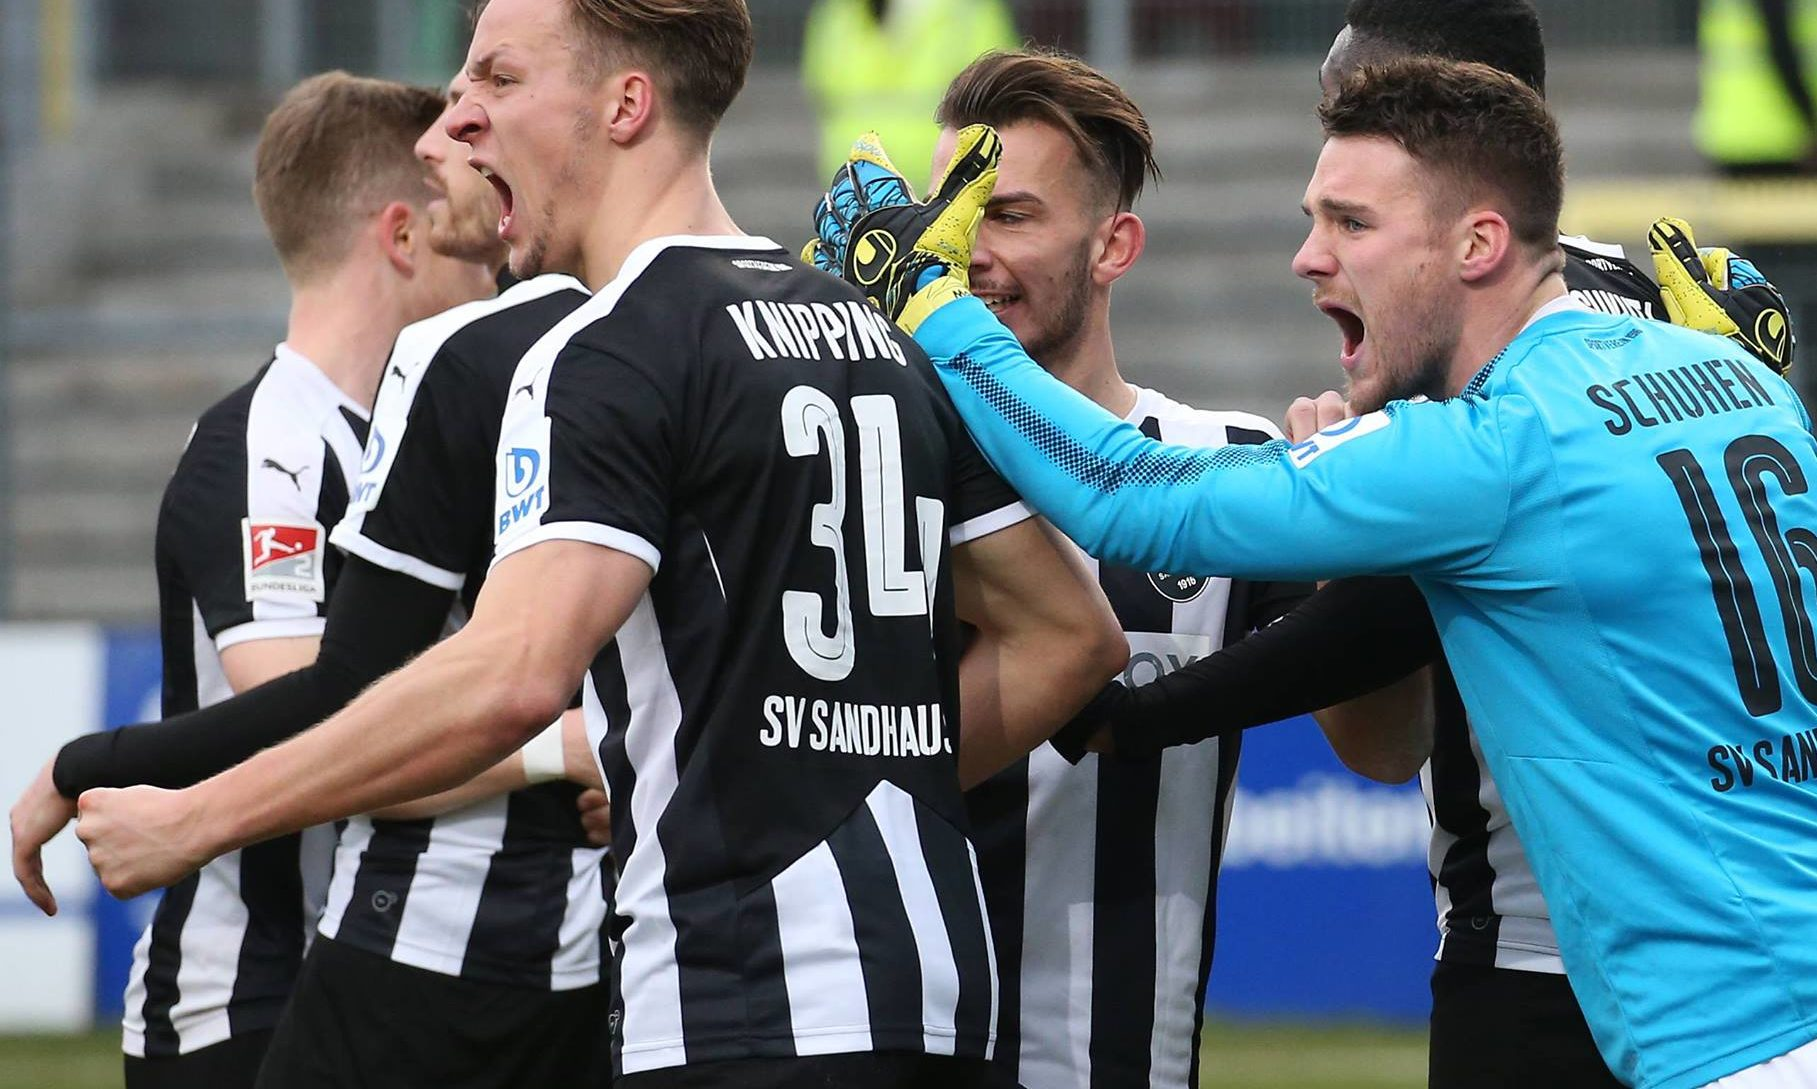 Bundesliga 2, Furth-Sandhausen: bianconeri in cerca del tris! News, pronostico e variazioni Blab Index